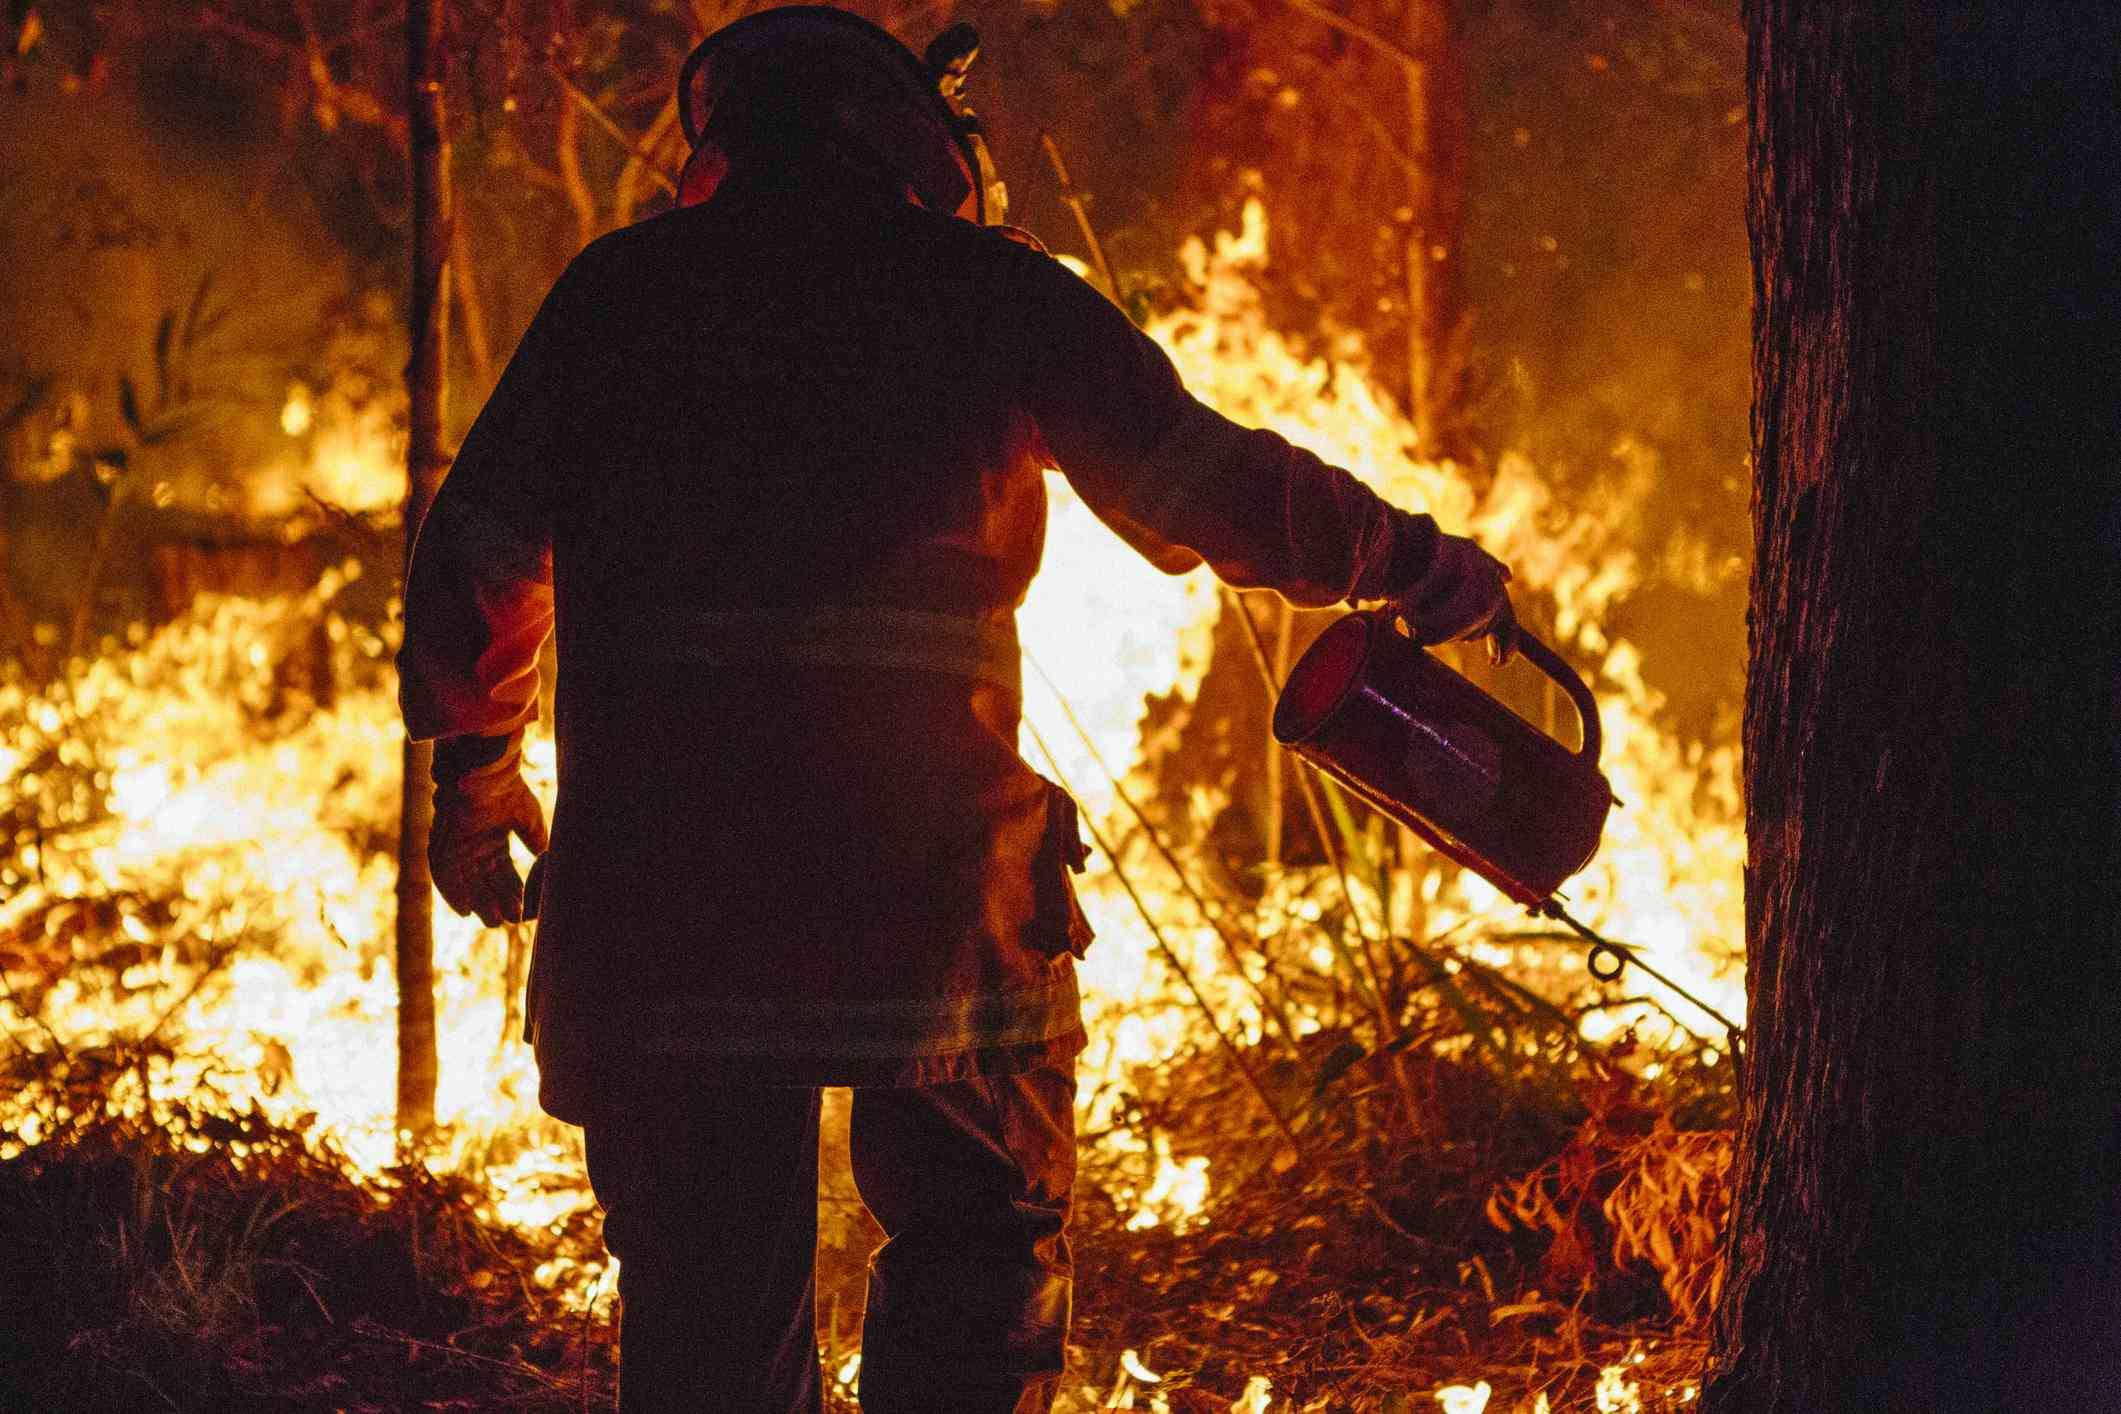 A firefighter conducting a controlled burn with a drip torch